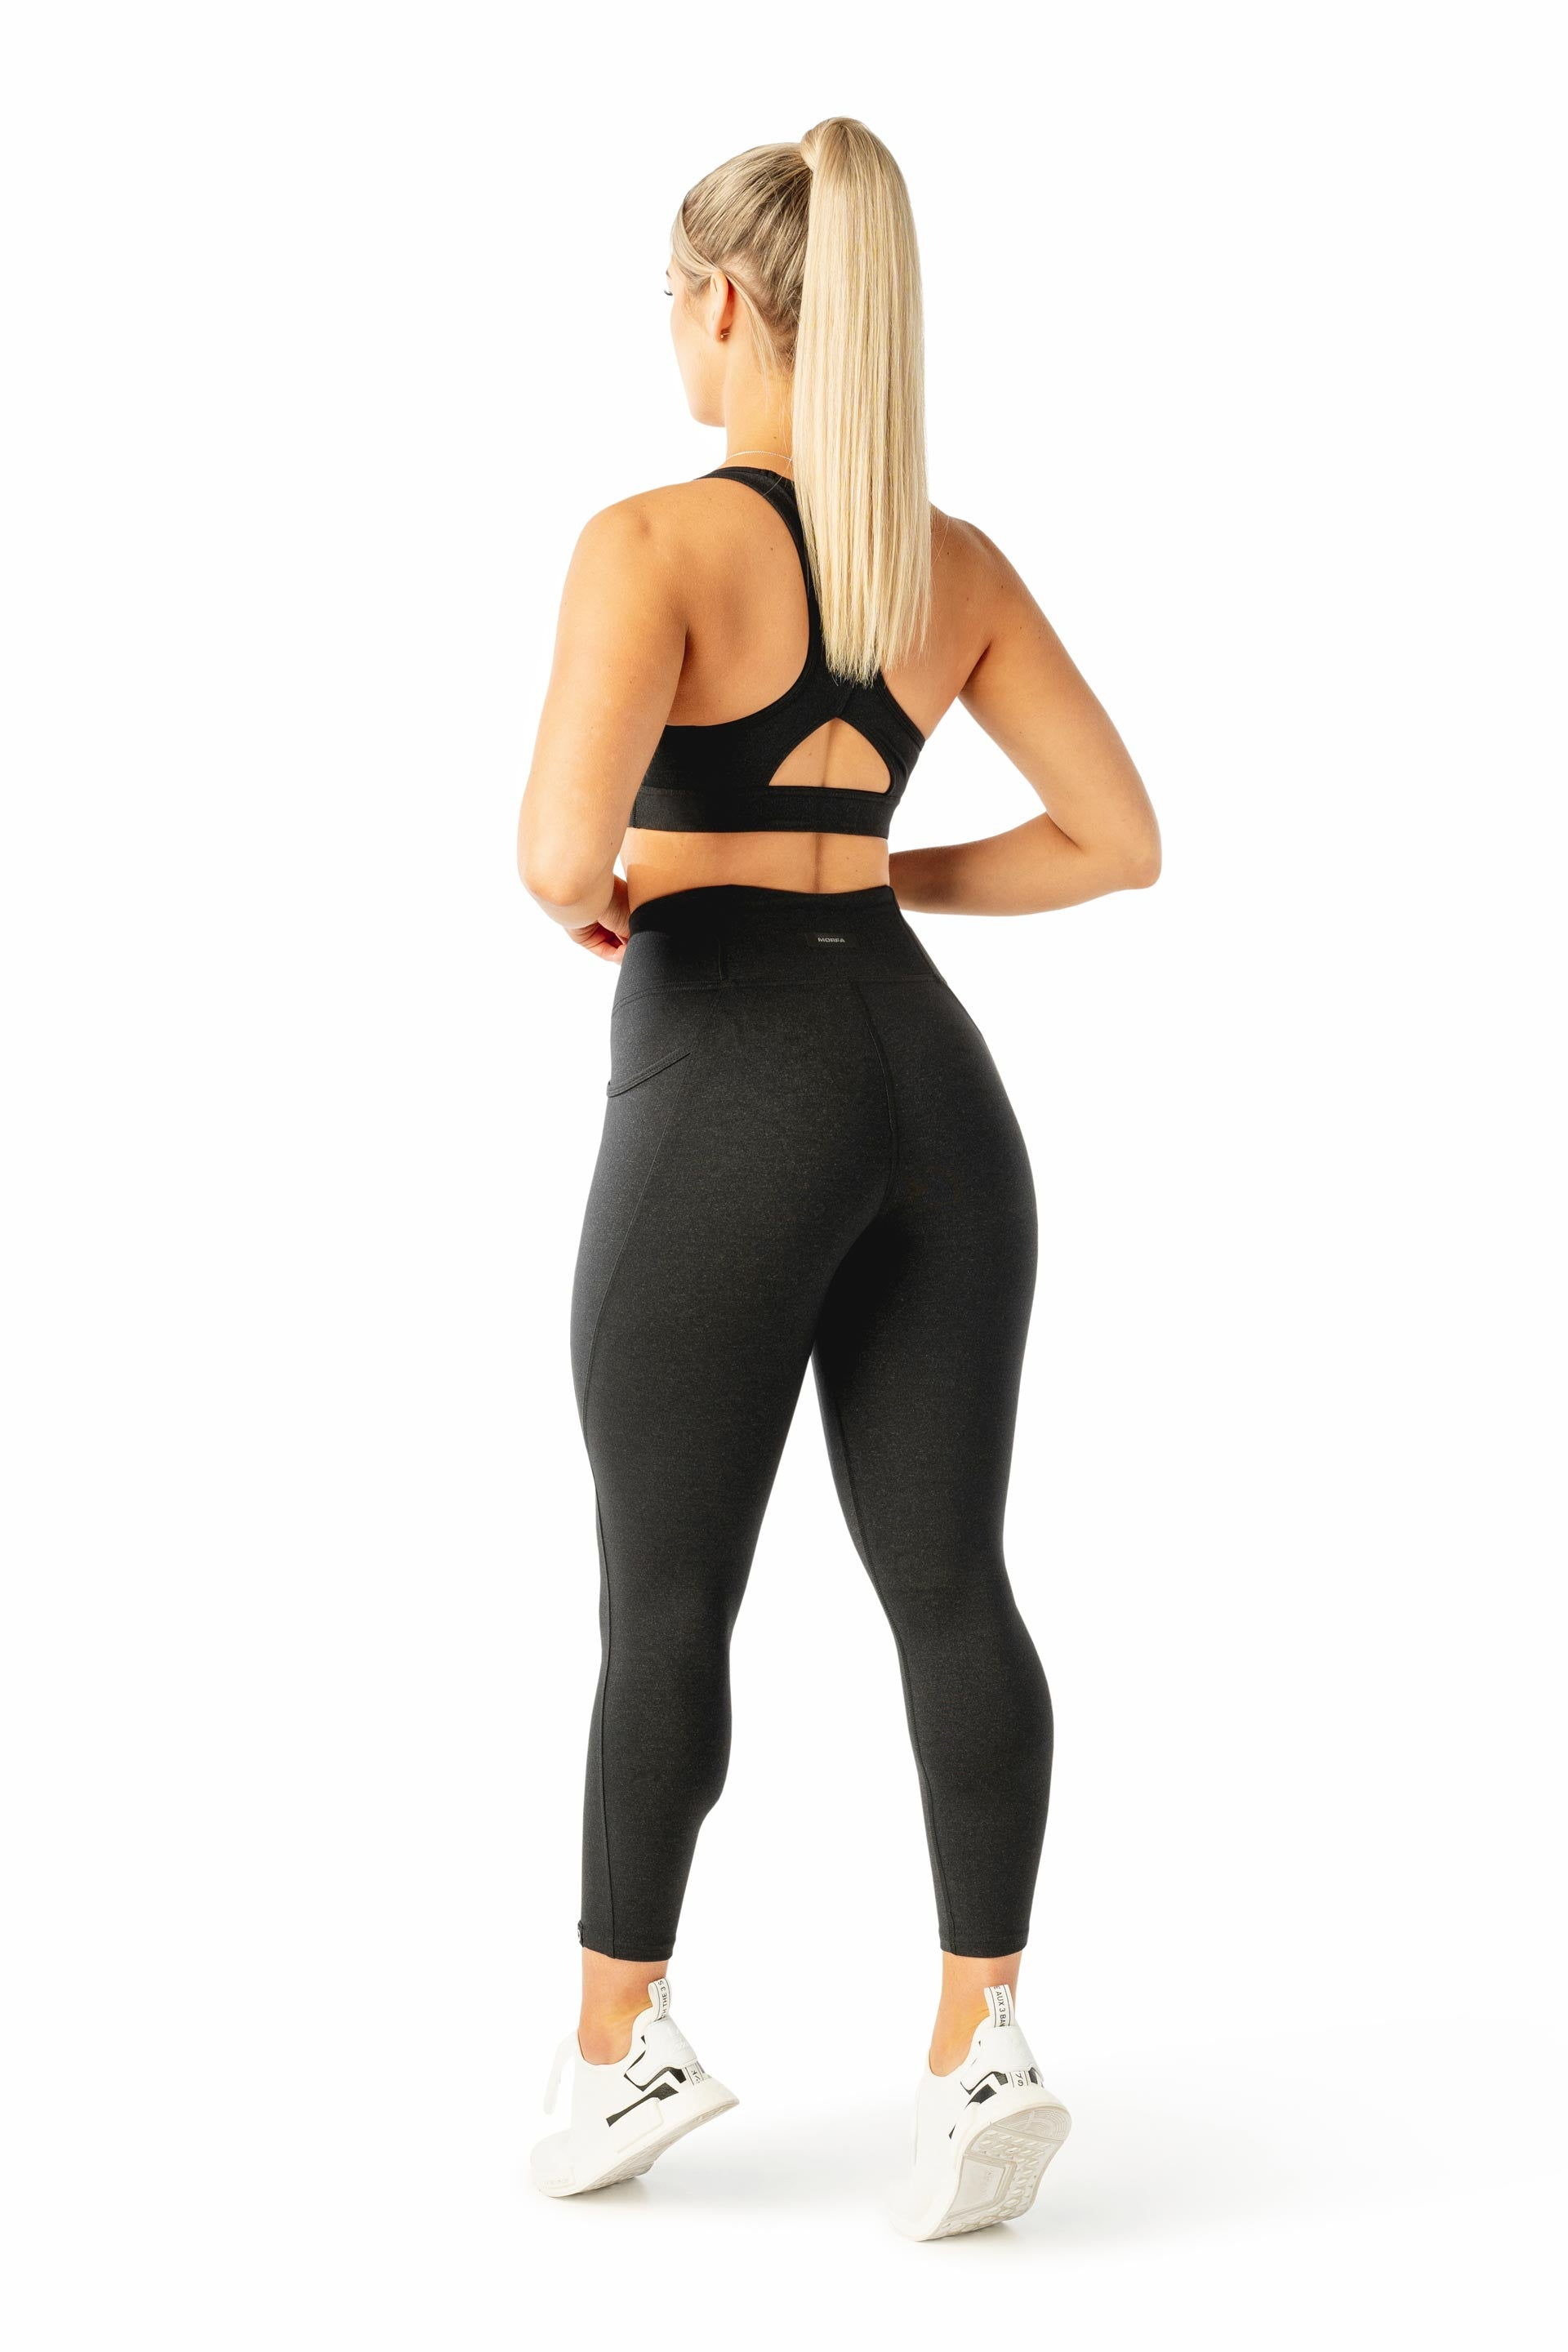 HIGH WAISTED SIDE POCKET 7/8 TIGHT - BLACK MARL